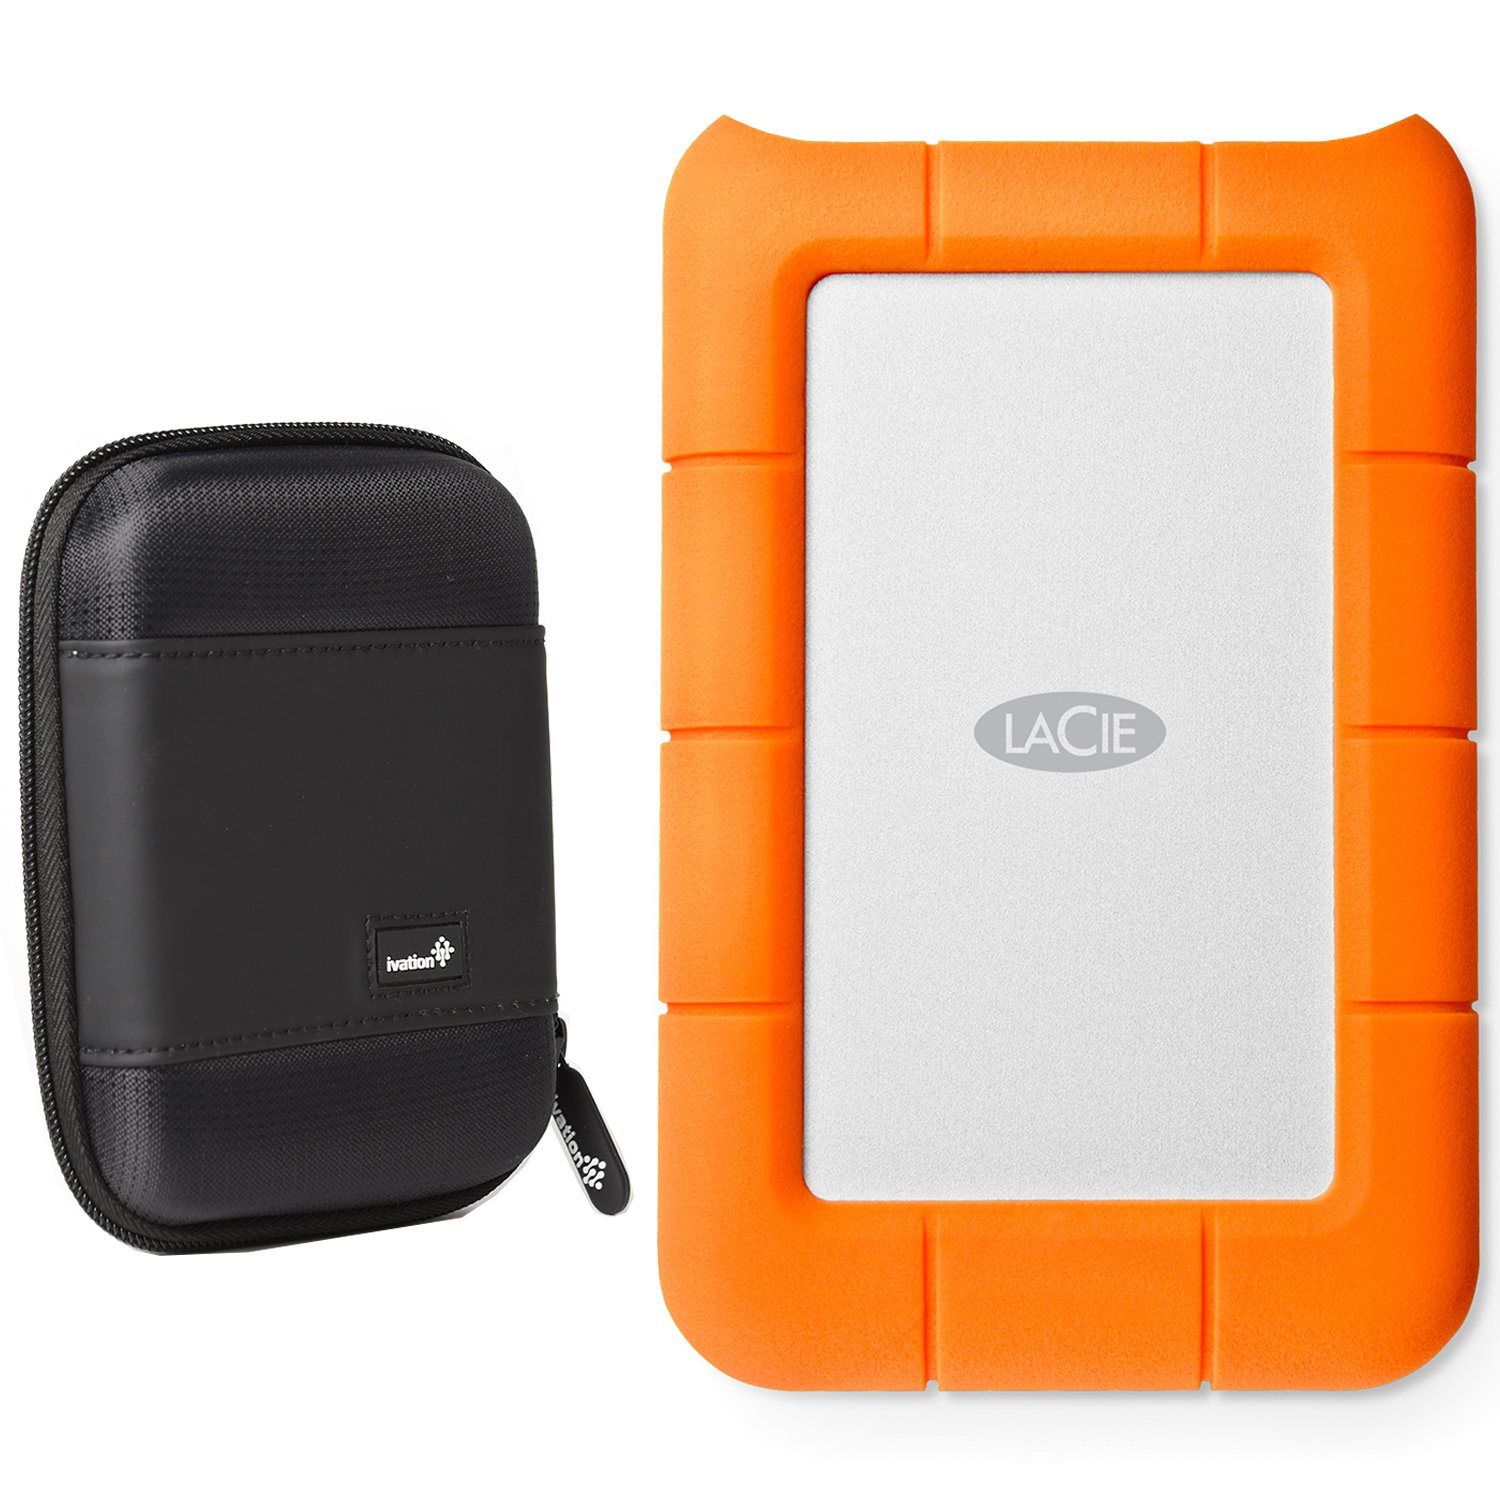 LaCie Rugged Thunderbolt & USB 3.0 2TB 9000489 (LAC9000489) With Ivation Compact Portable Hard Drive Case